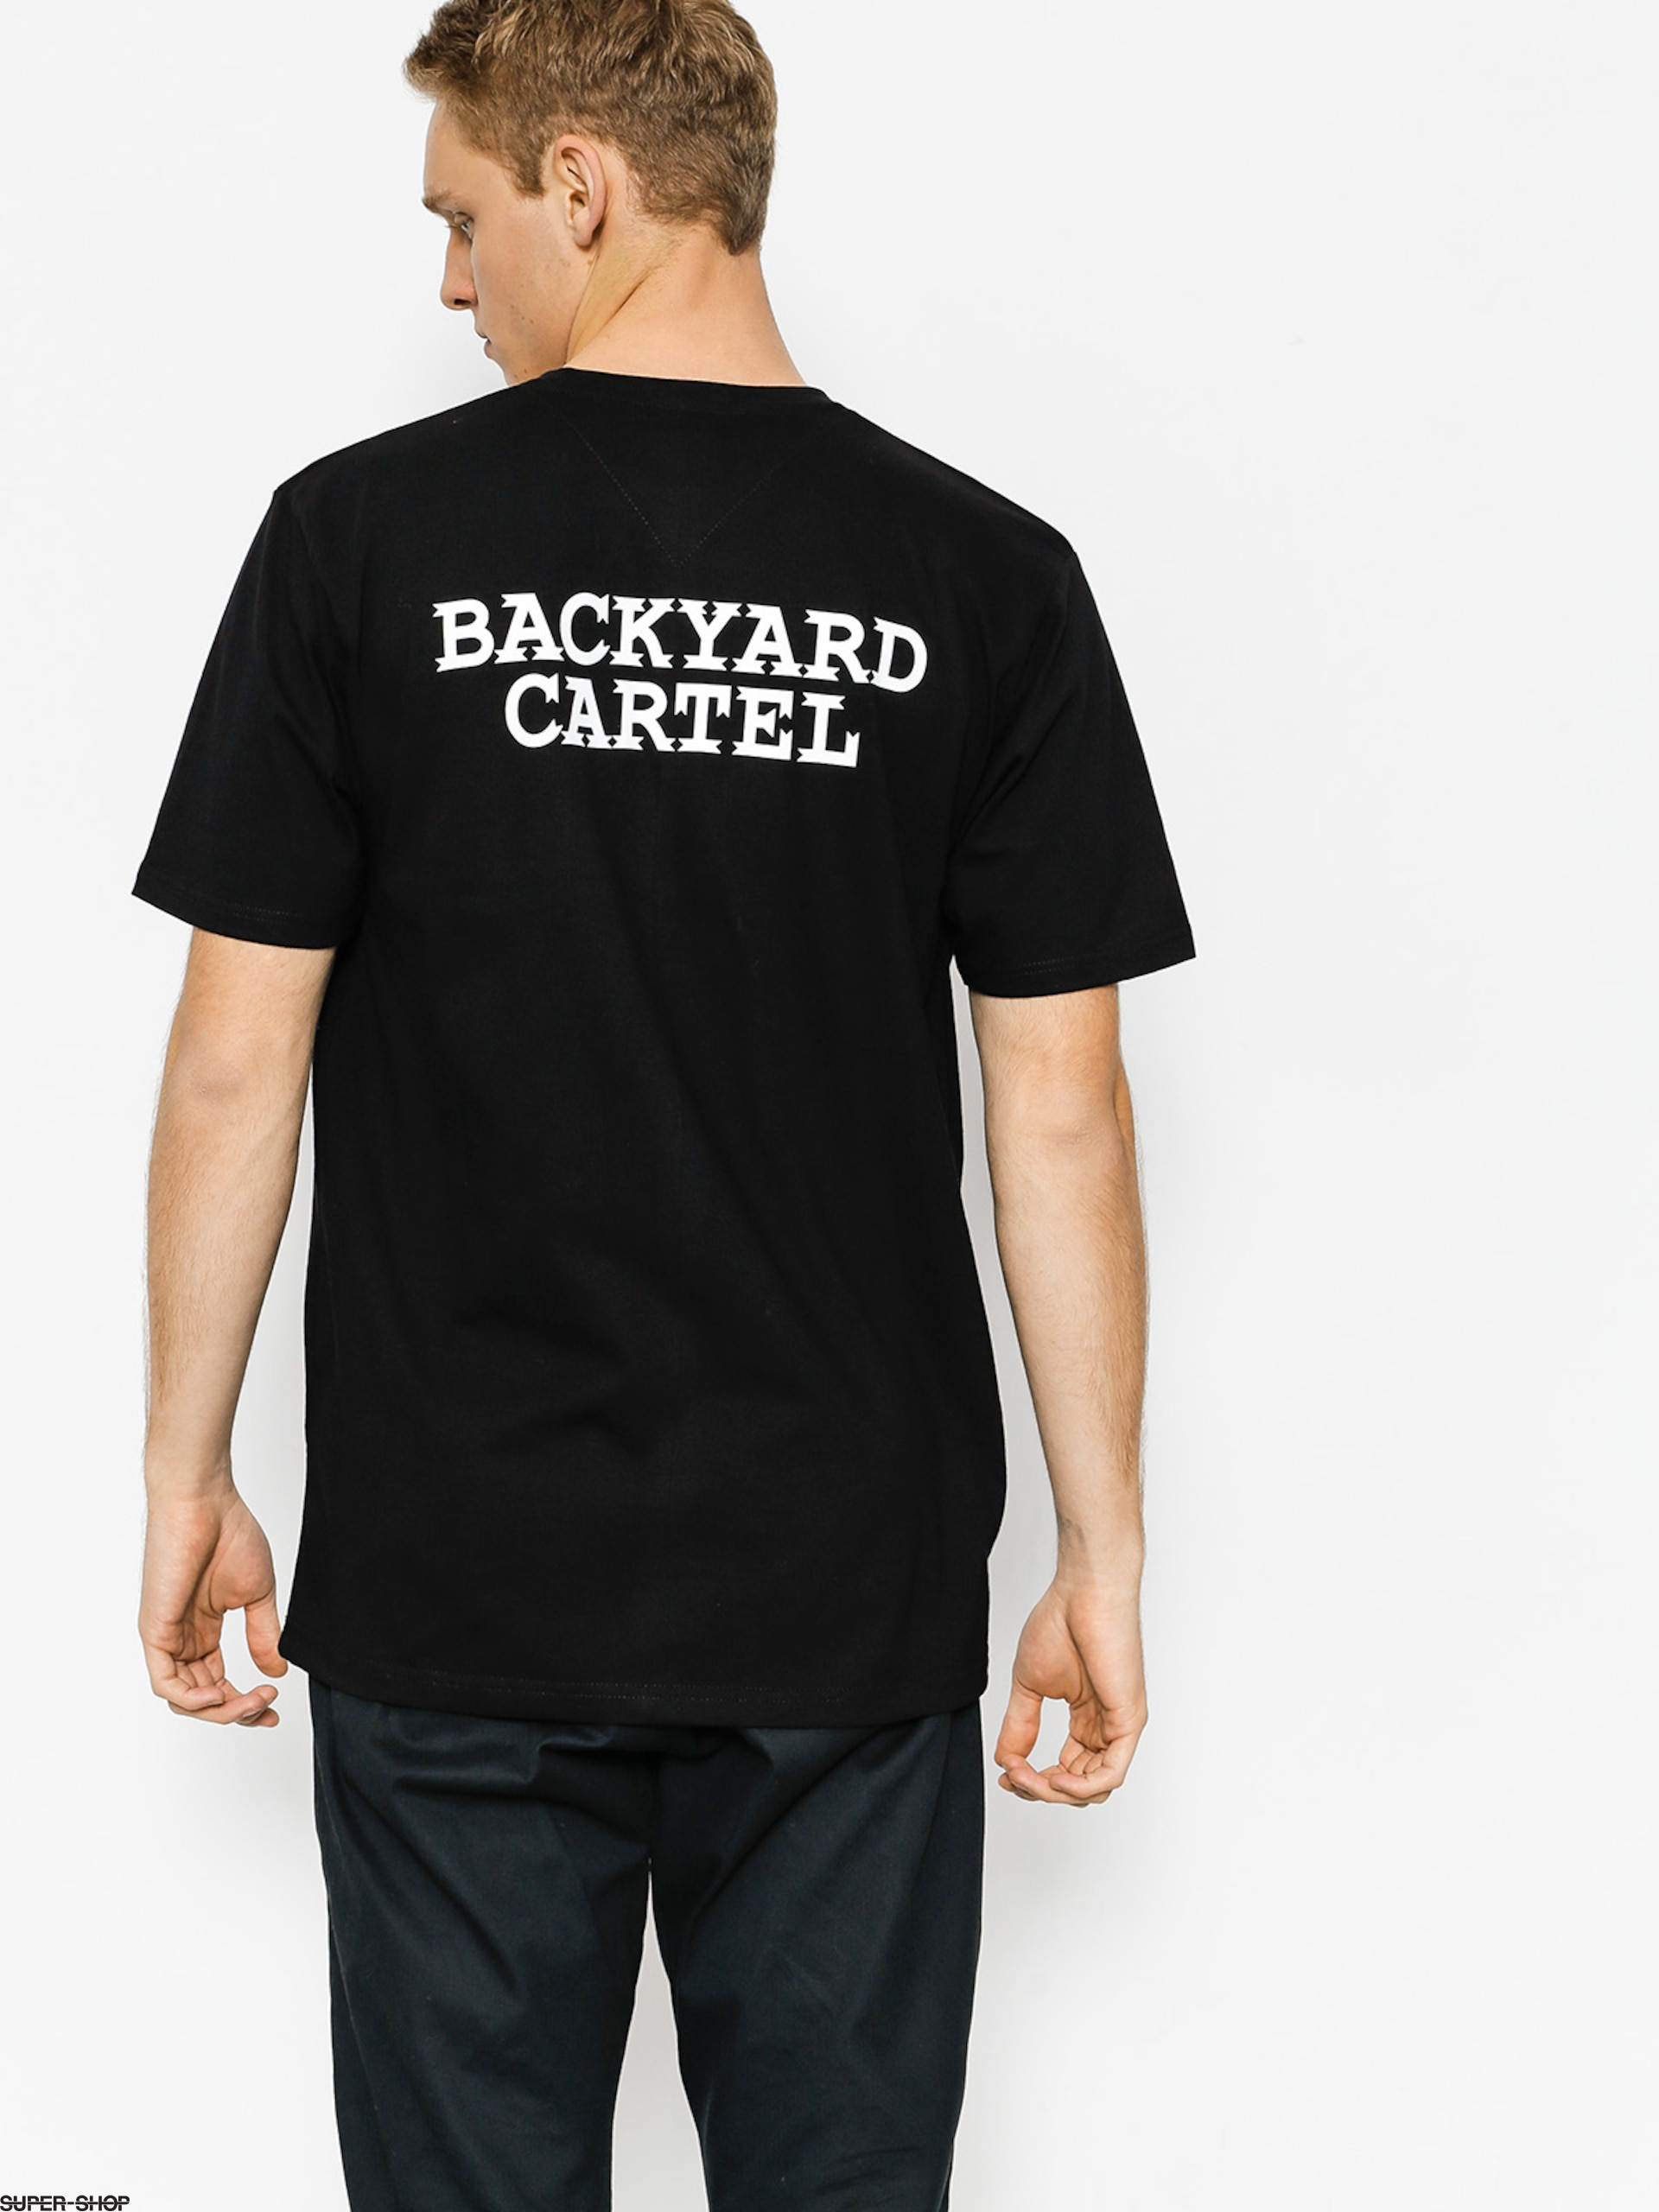 Backyard Cartel T-shirt Back Label